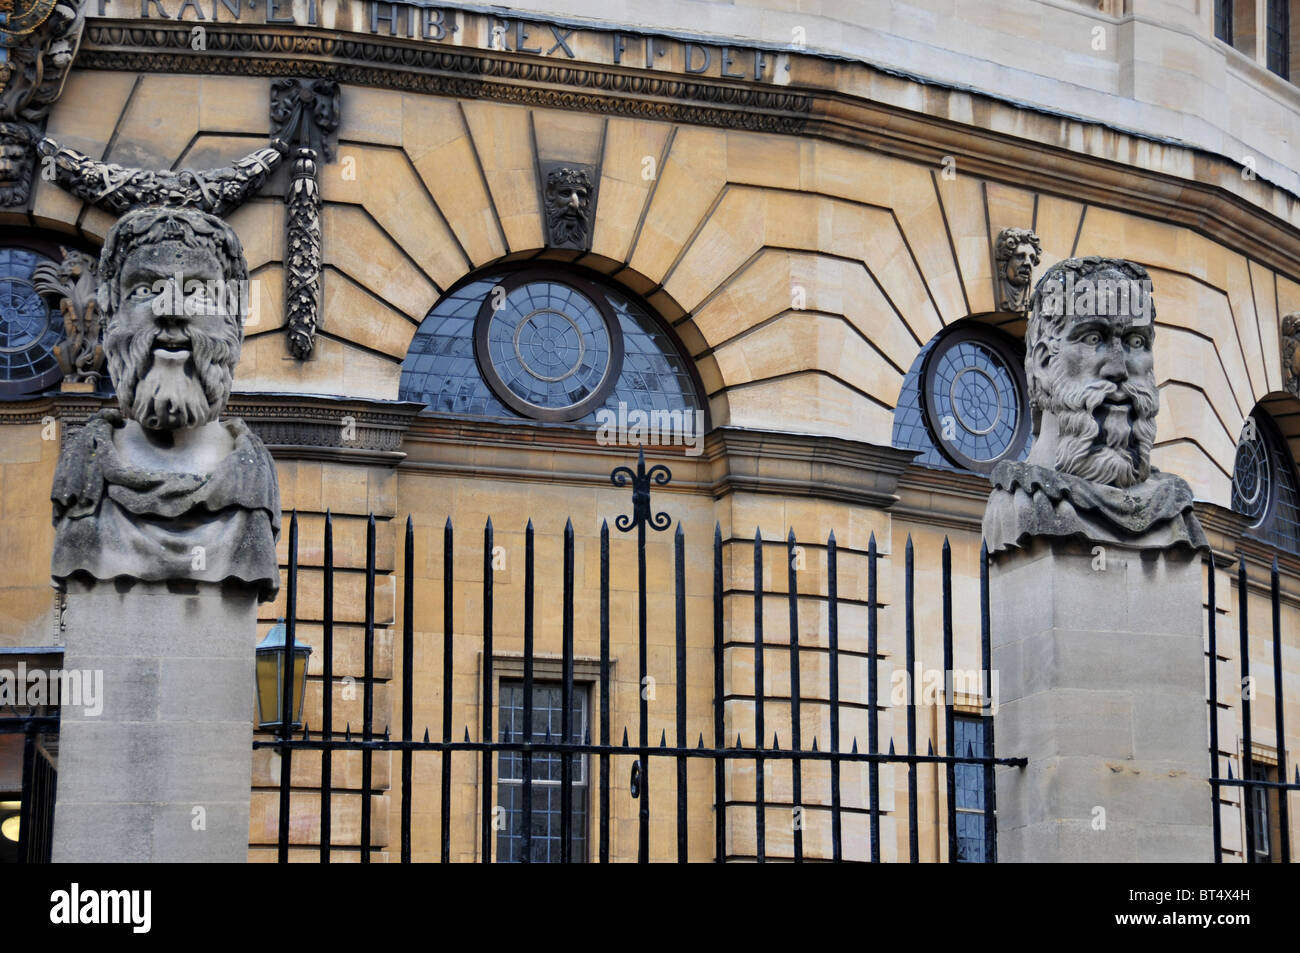 Gargoyles on railings outside the Sheldonian Theatre, Broad Street, Oxford Stock Photo